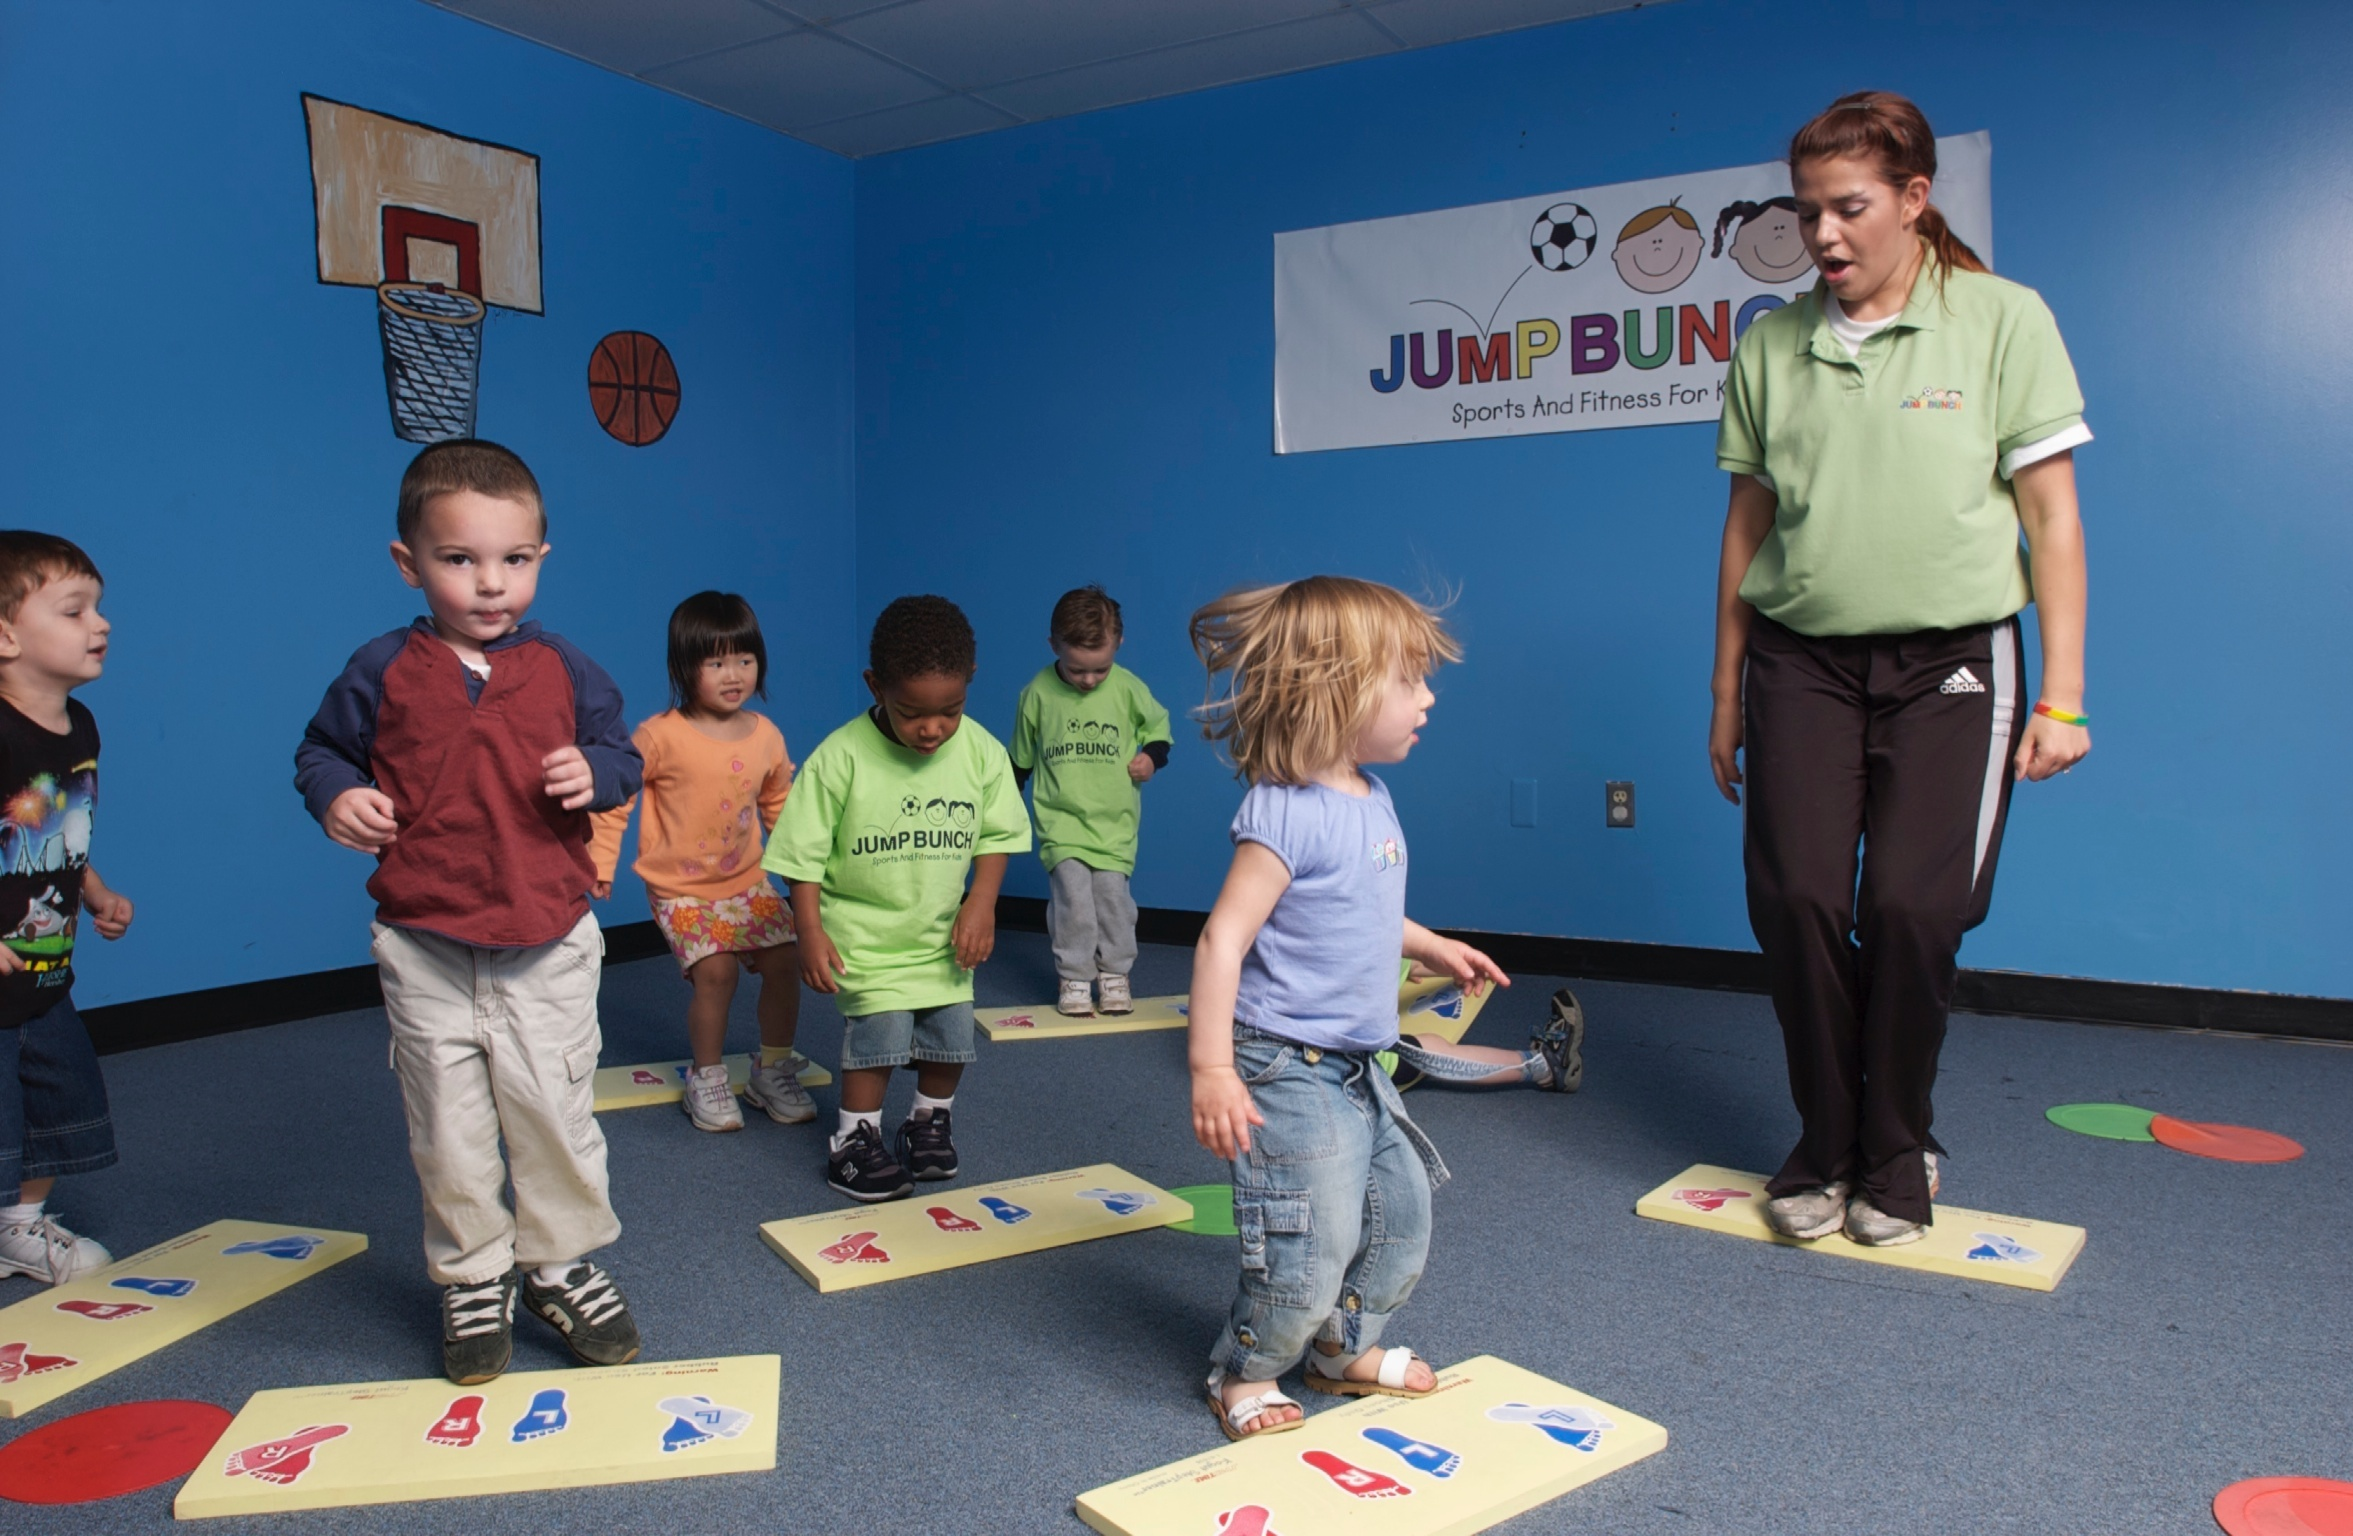 JumpBunch Harrisburg PA | A Friendly Introduction to Sports and Fitness!